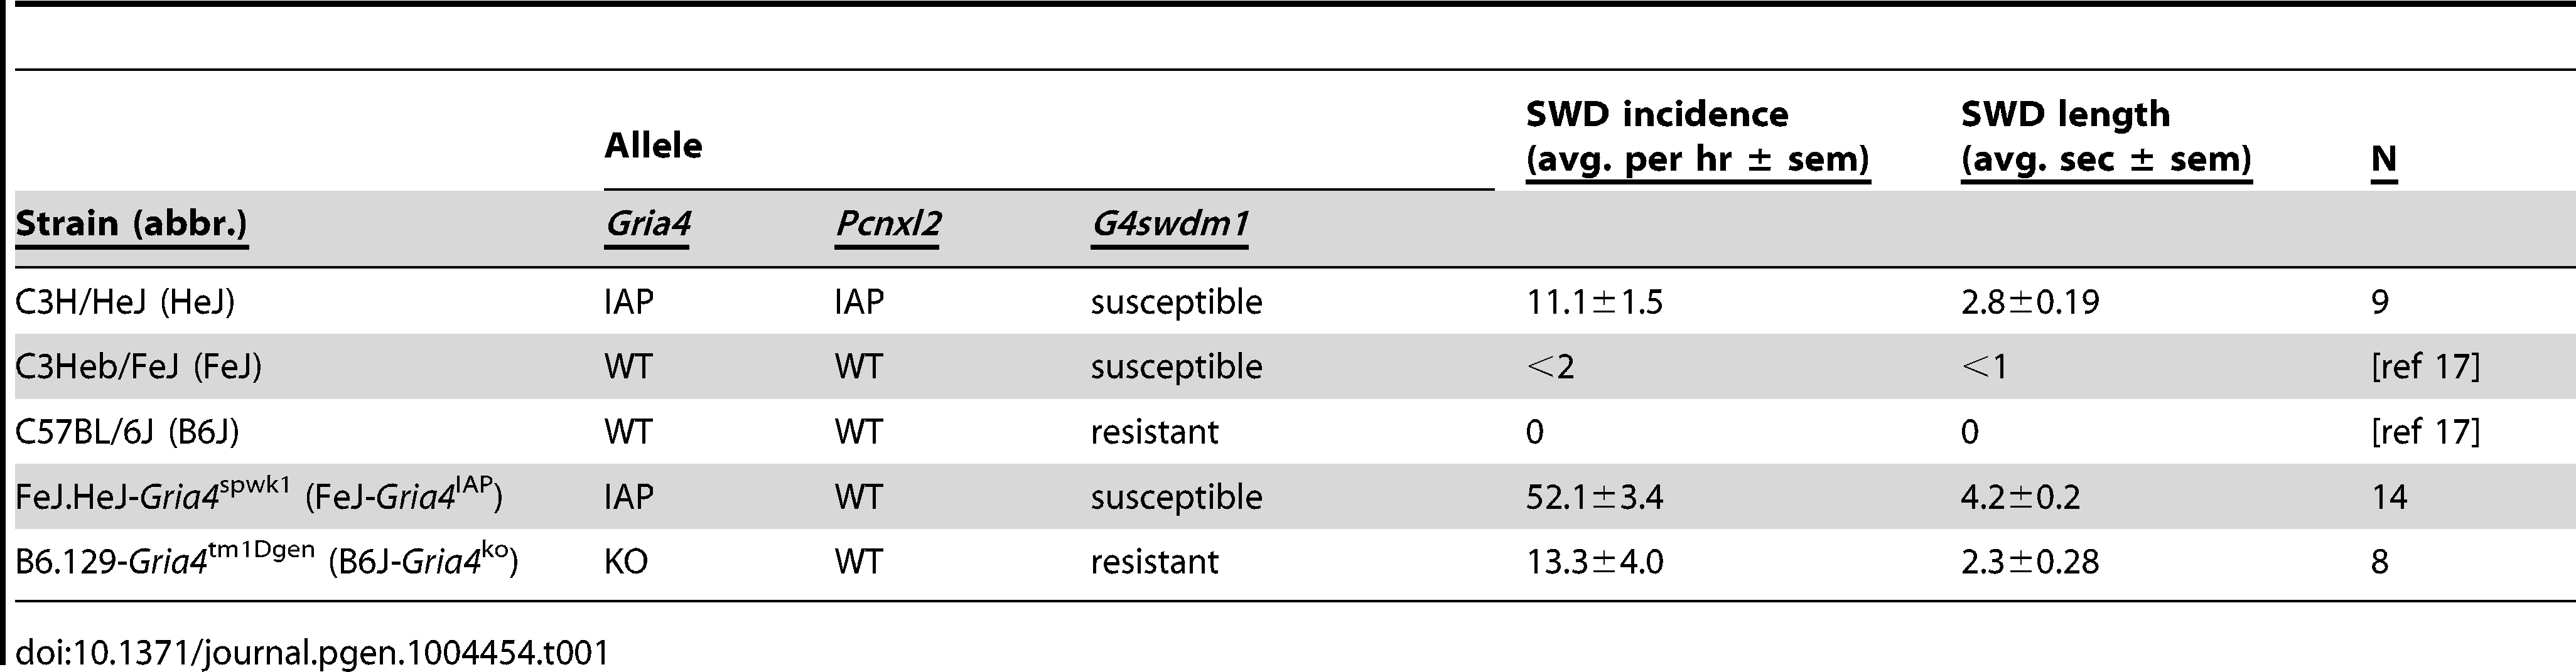 Genotypes and features of inbred and congenic strains used in this study.